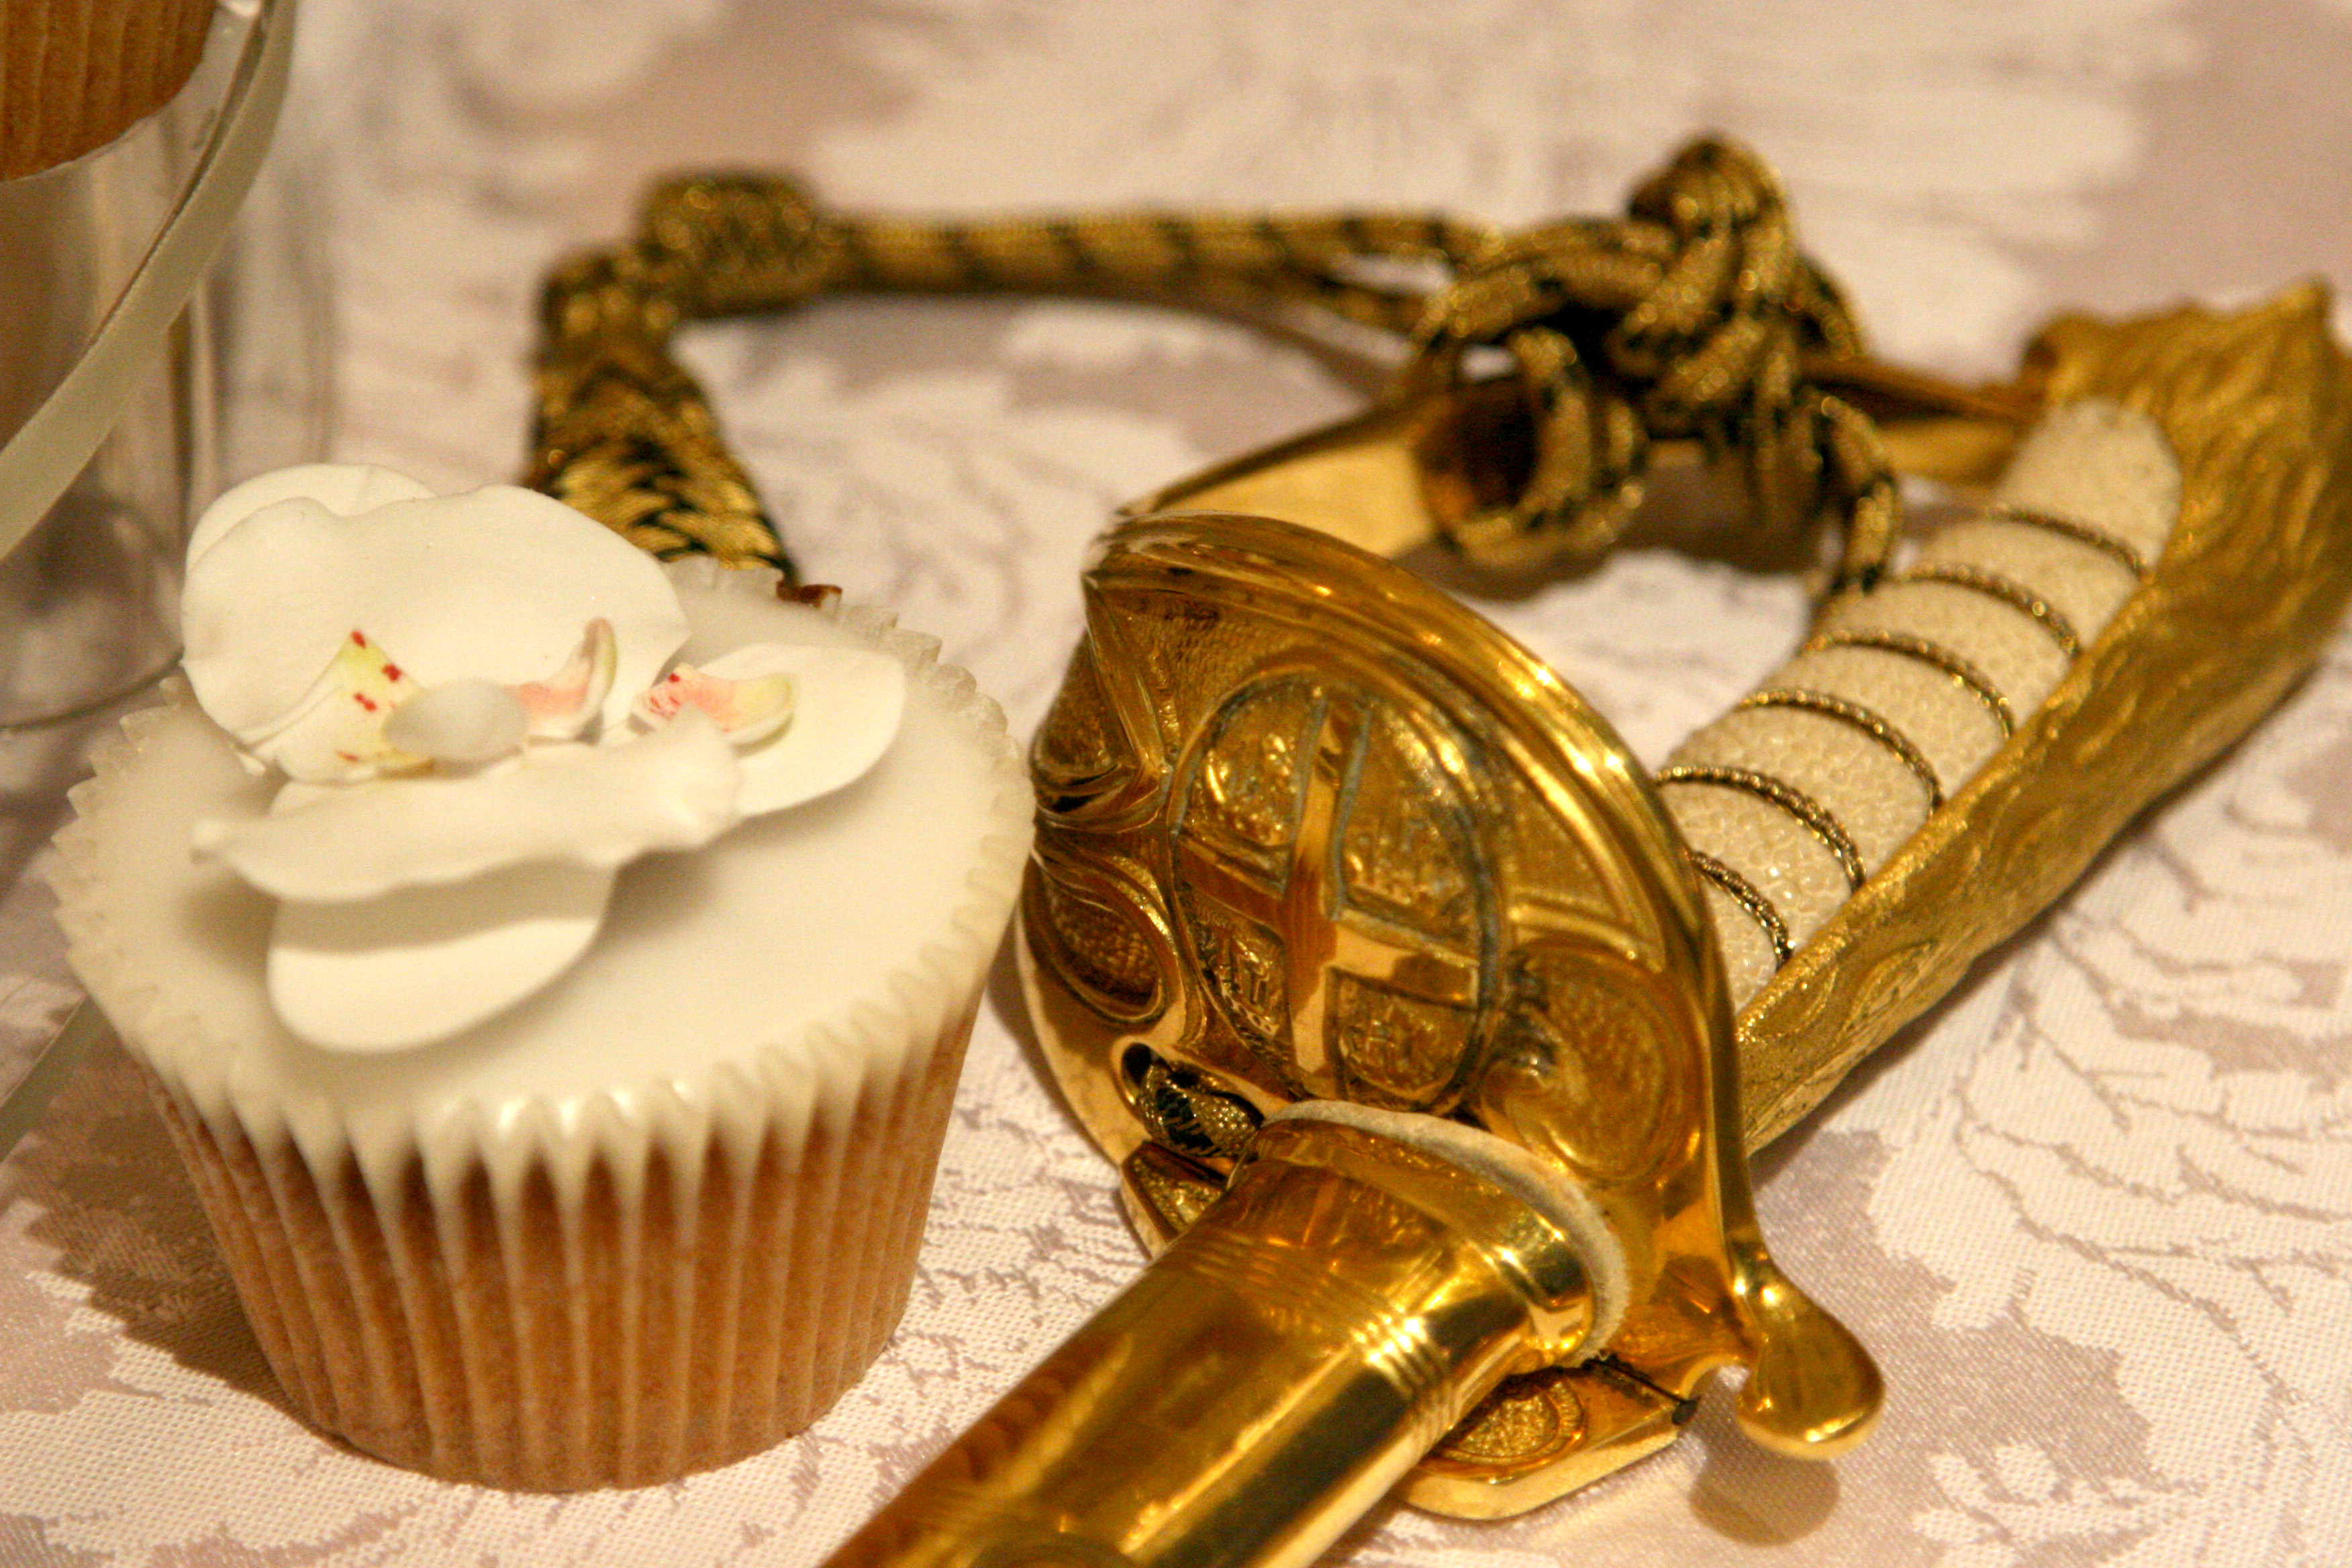 Sword and cupcakeJPG